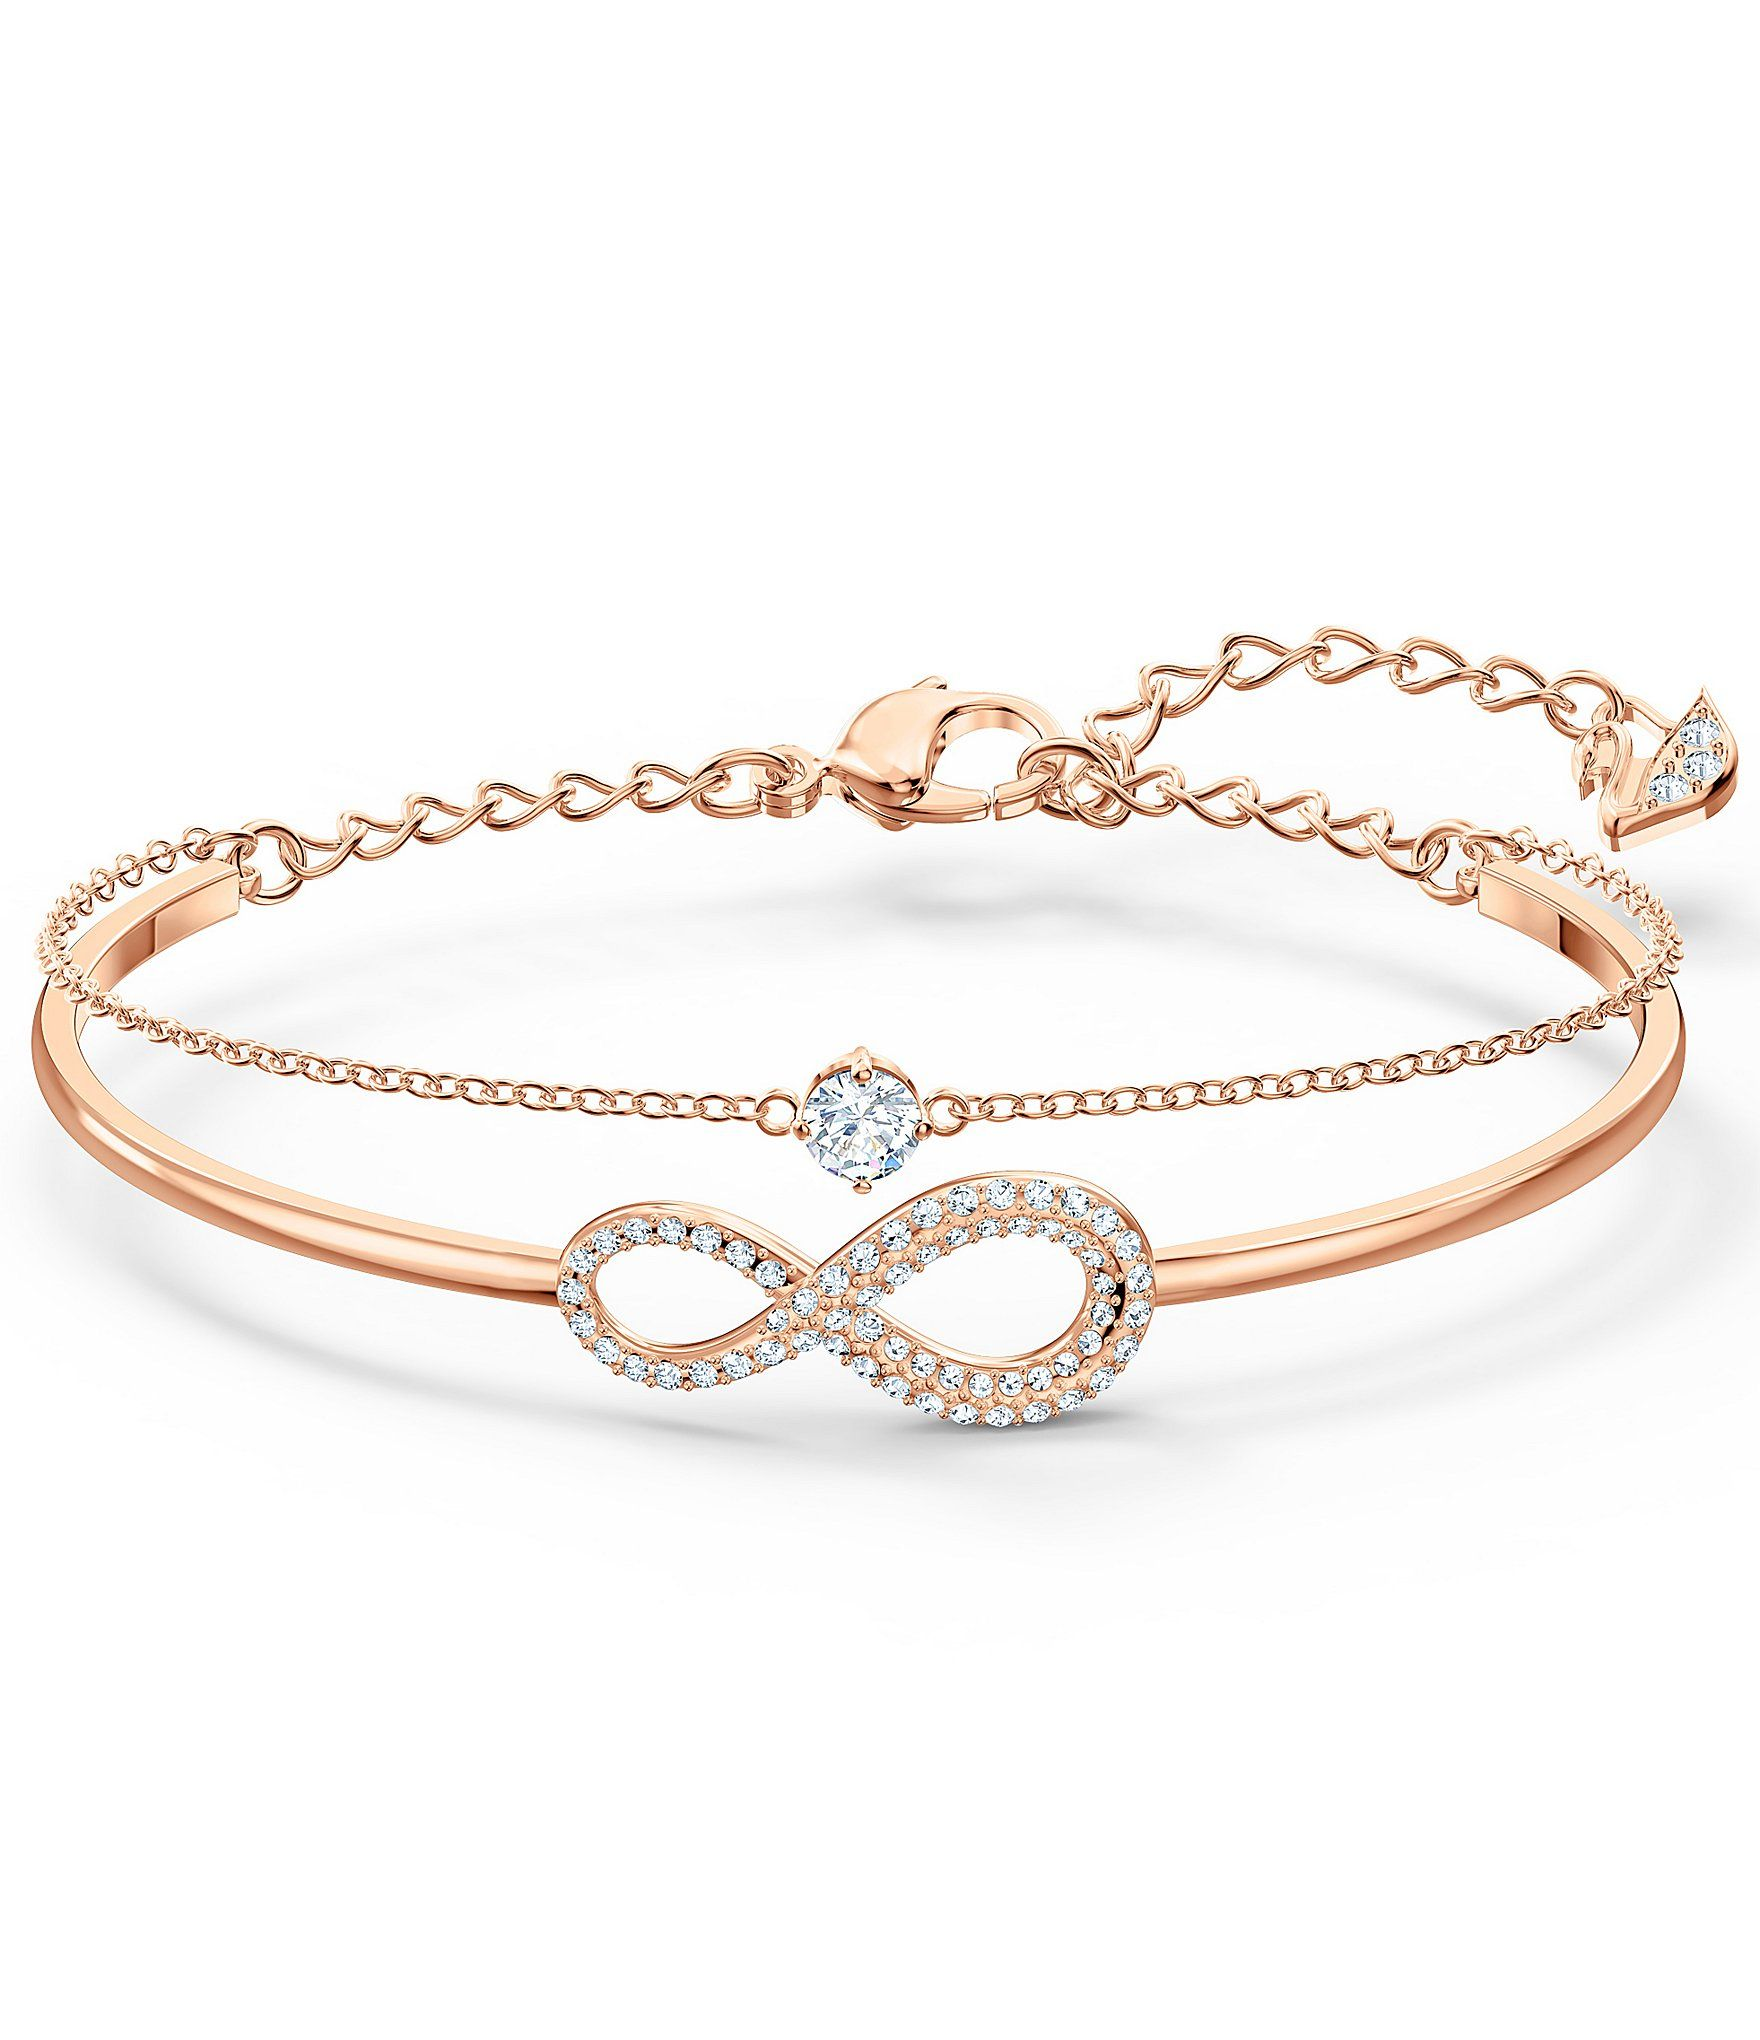 Swarovski Infinity Bangle Bracelet - Rose Gold